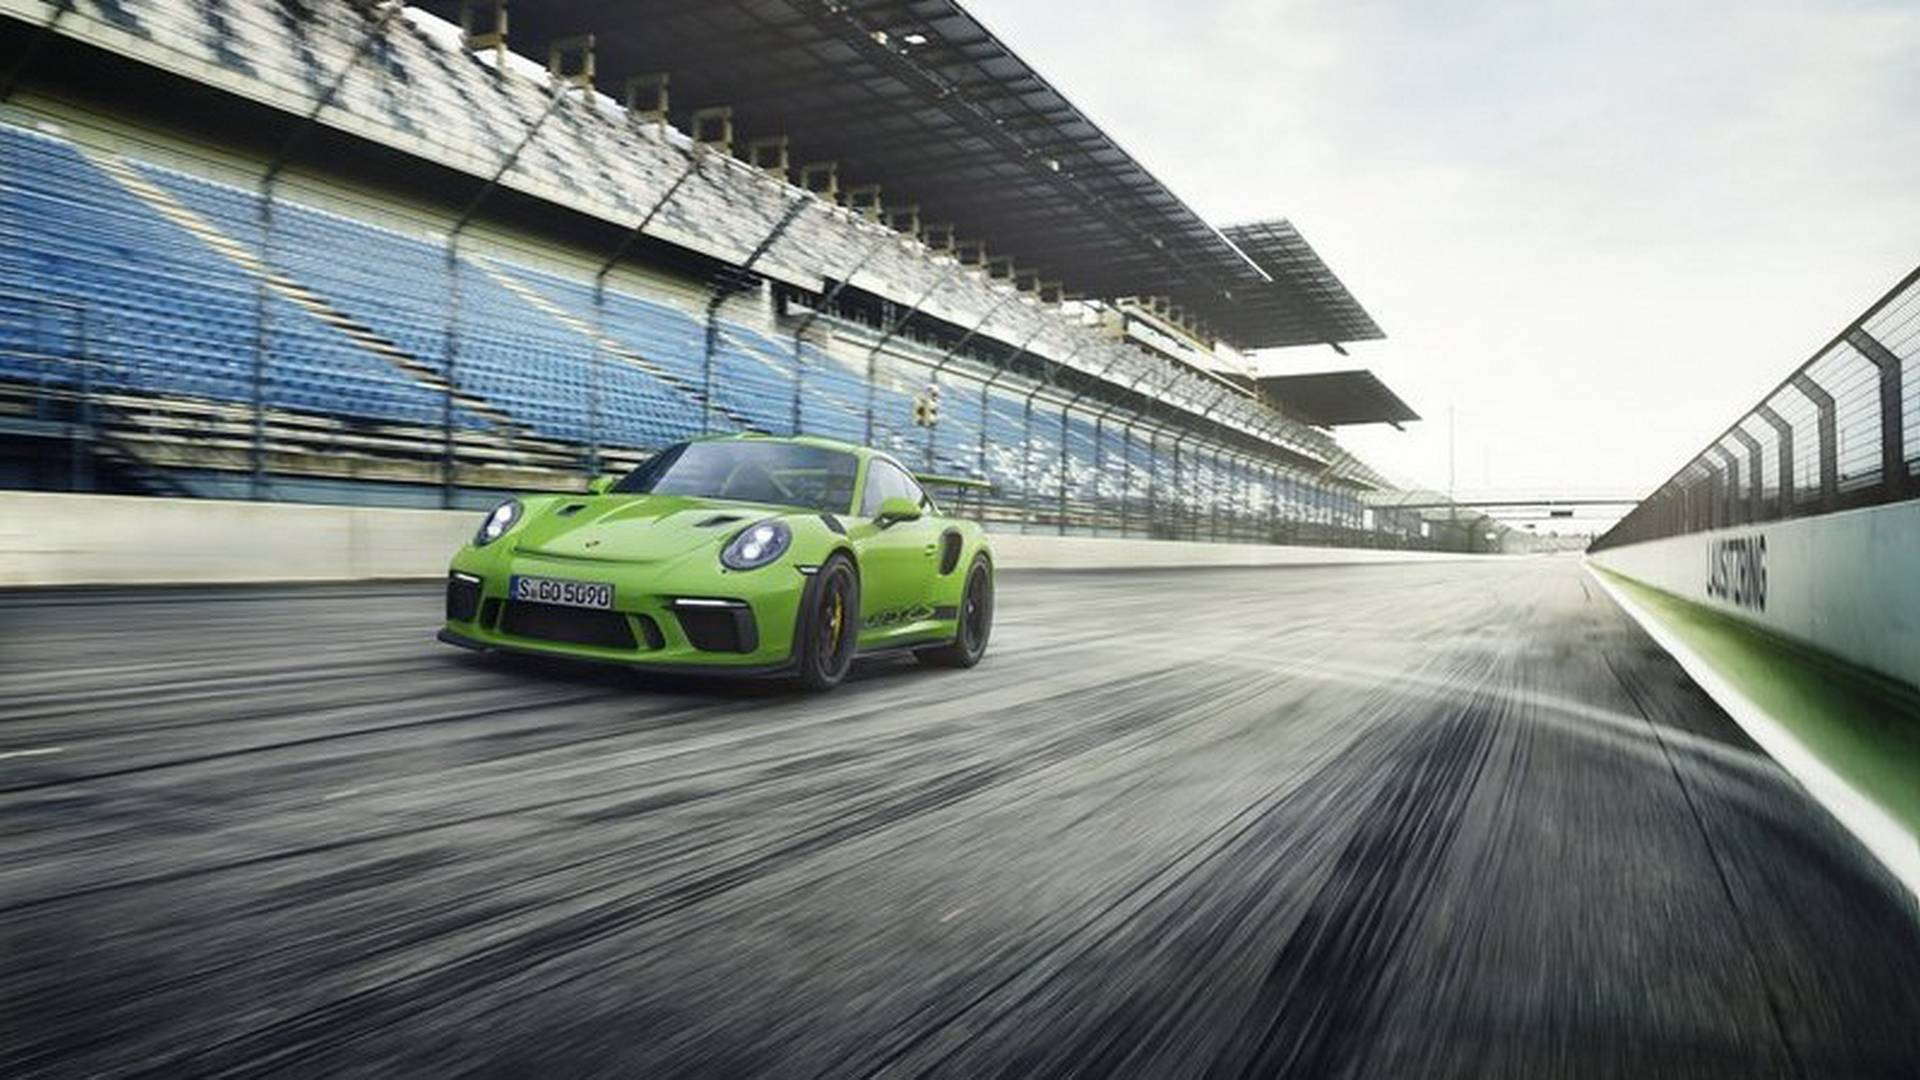 2019-porsche-911-gt3-rs-facelift-9912-leaked-looks-great-in-mamba-green_2.jpg